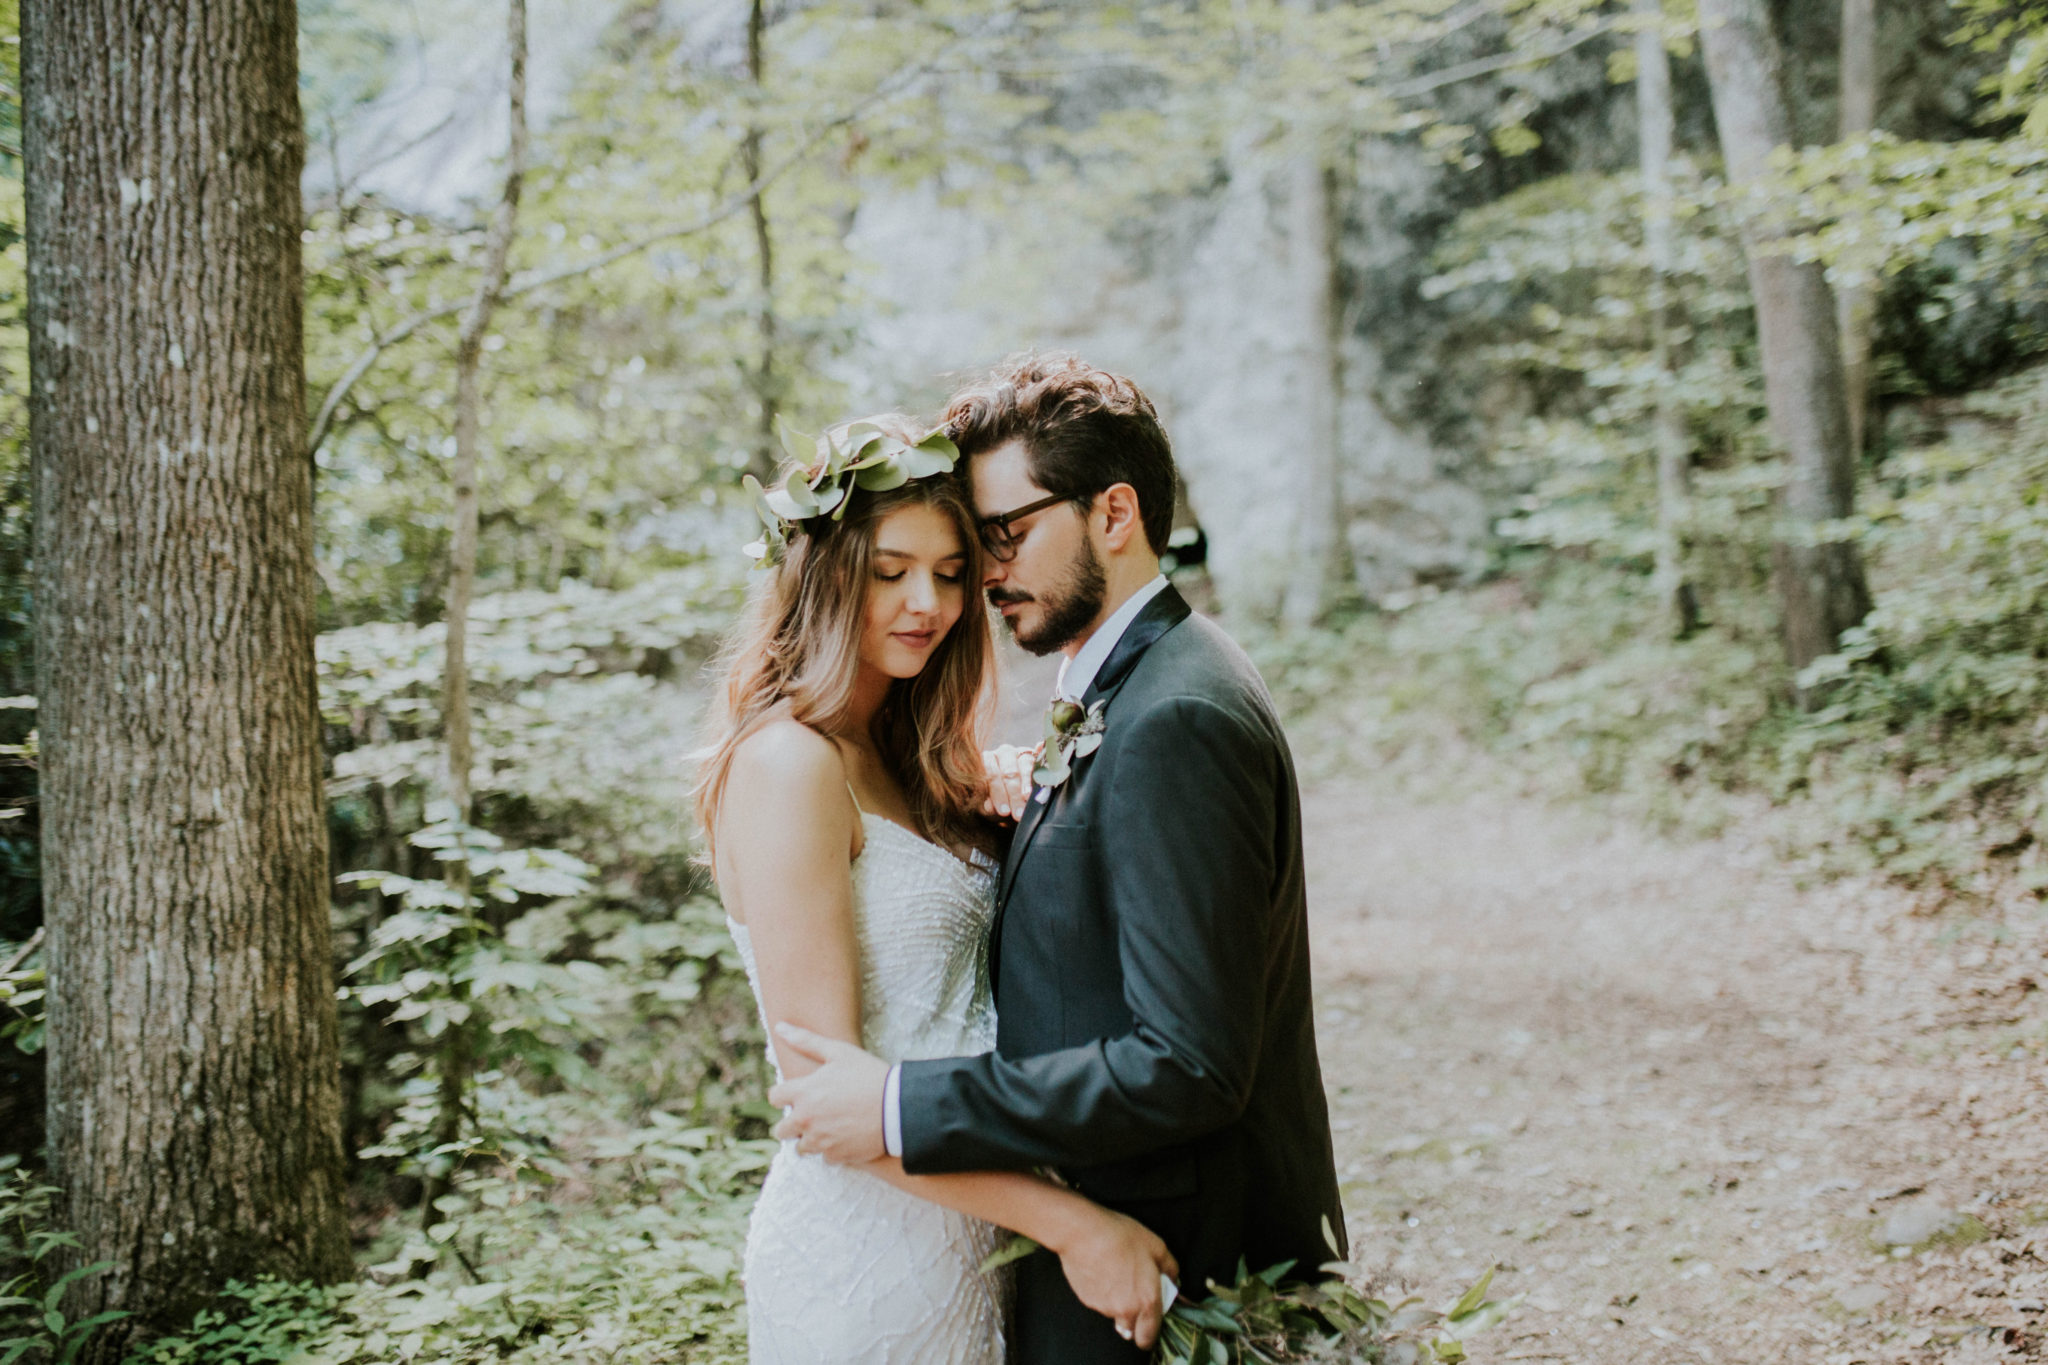 Anna & Jesus North Carolina Mountain Wedding Photographer-707